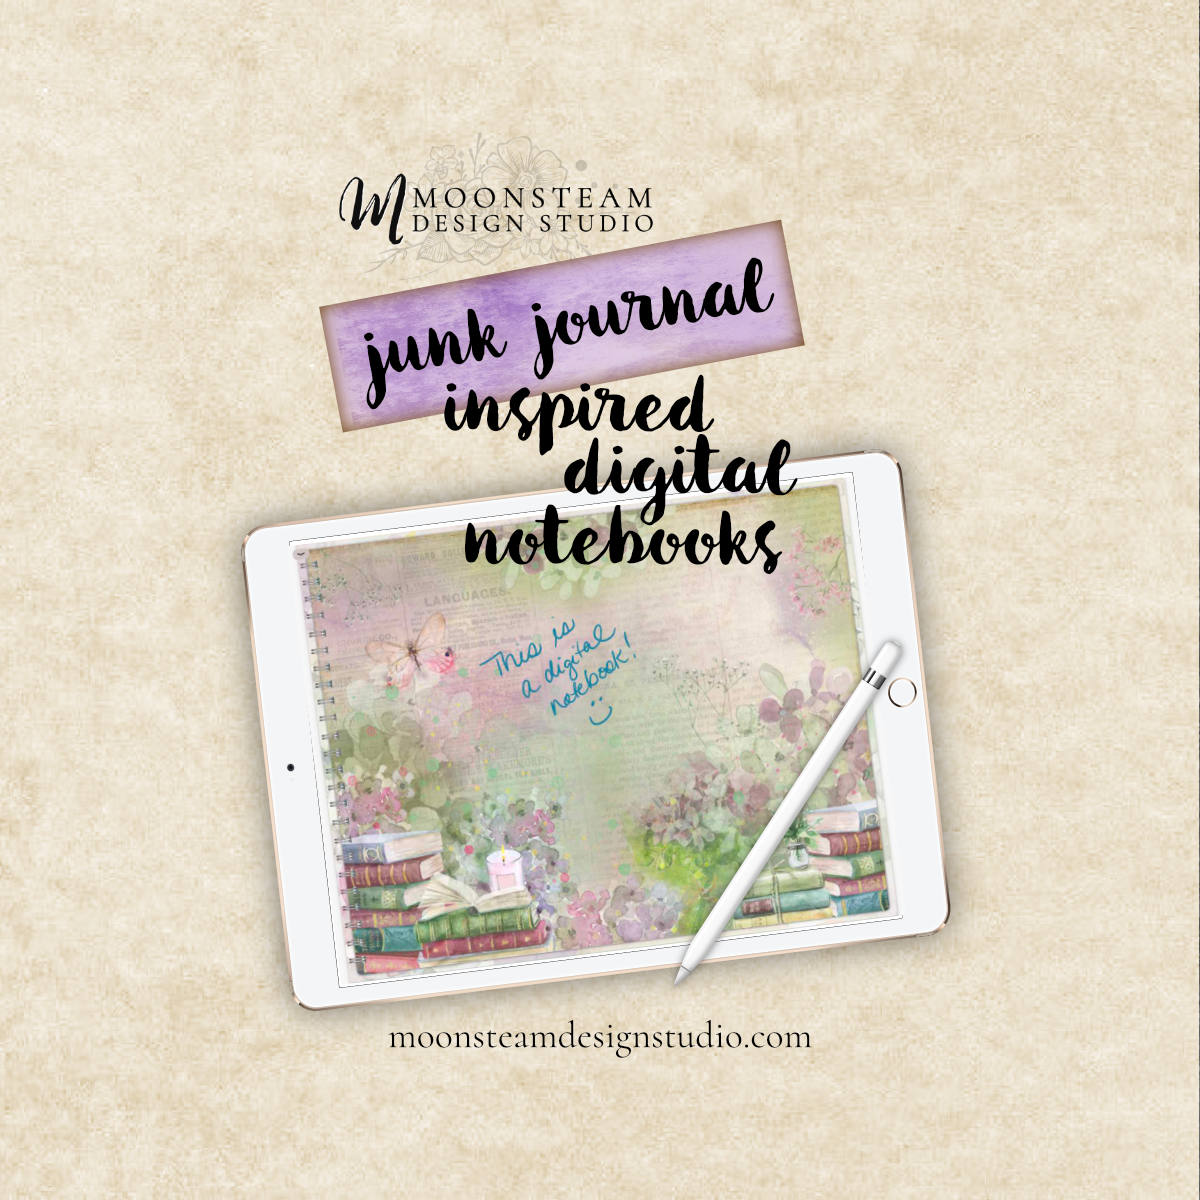 Junk Journal Inspired Digital Notebooks